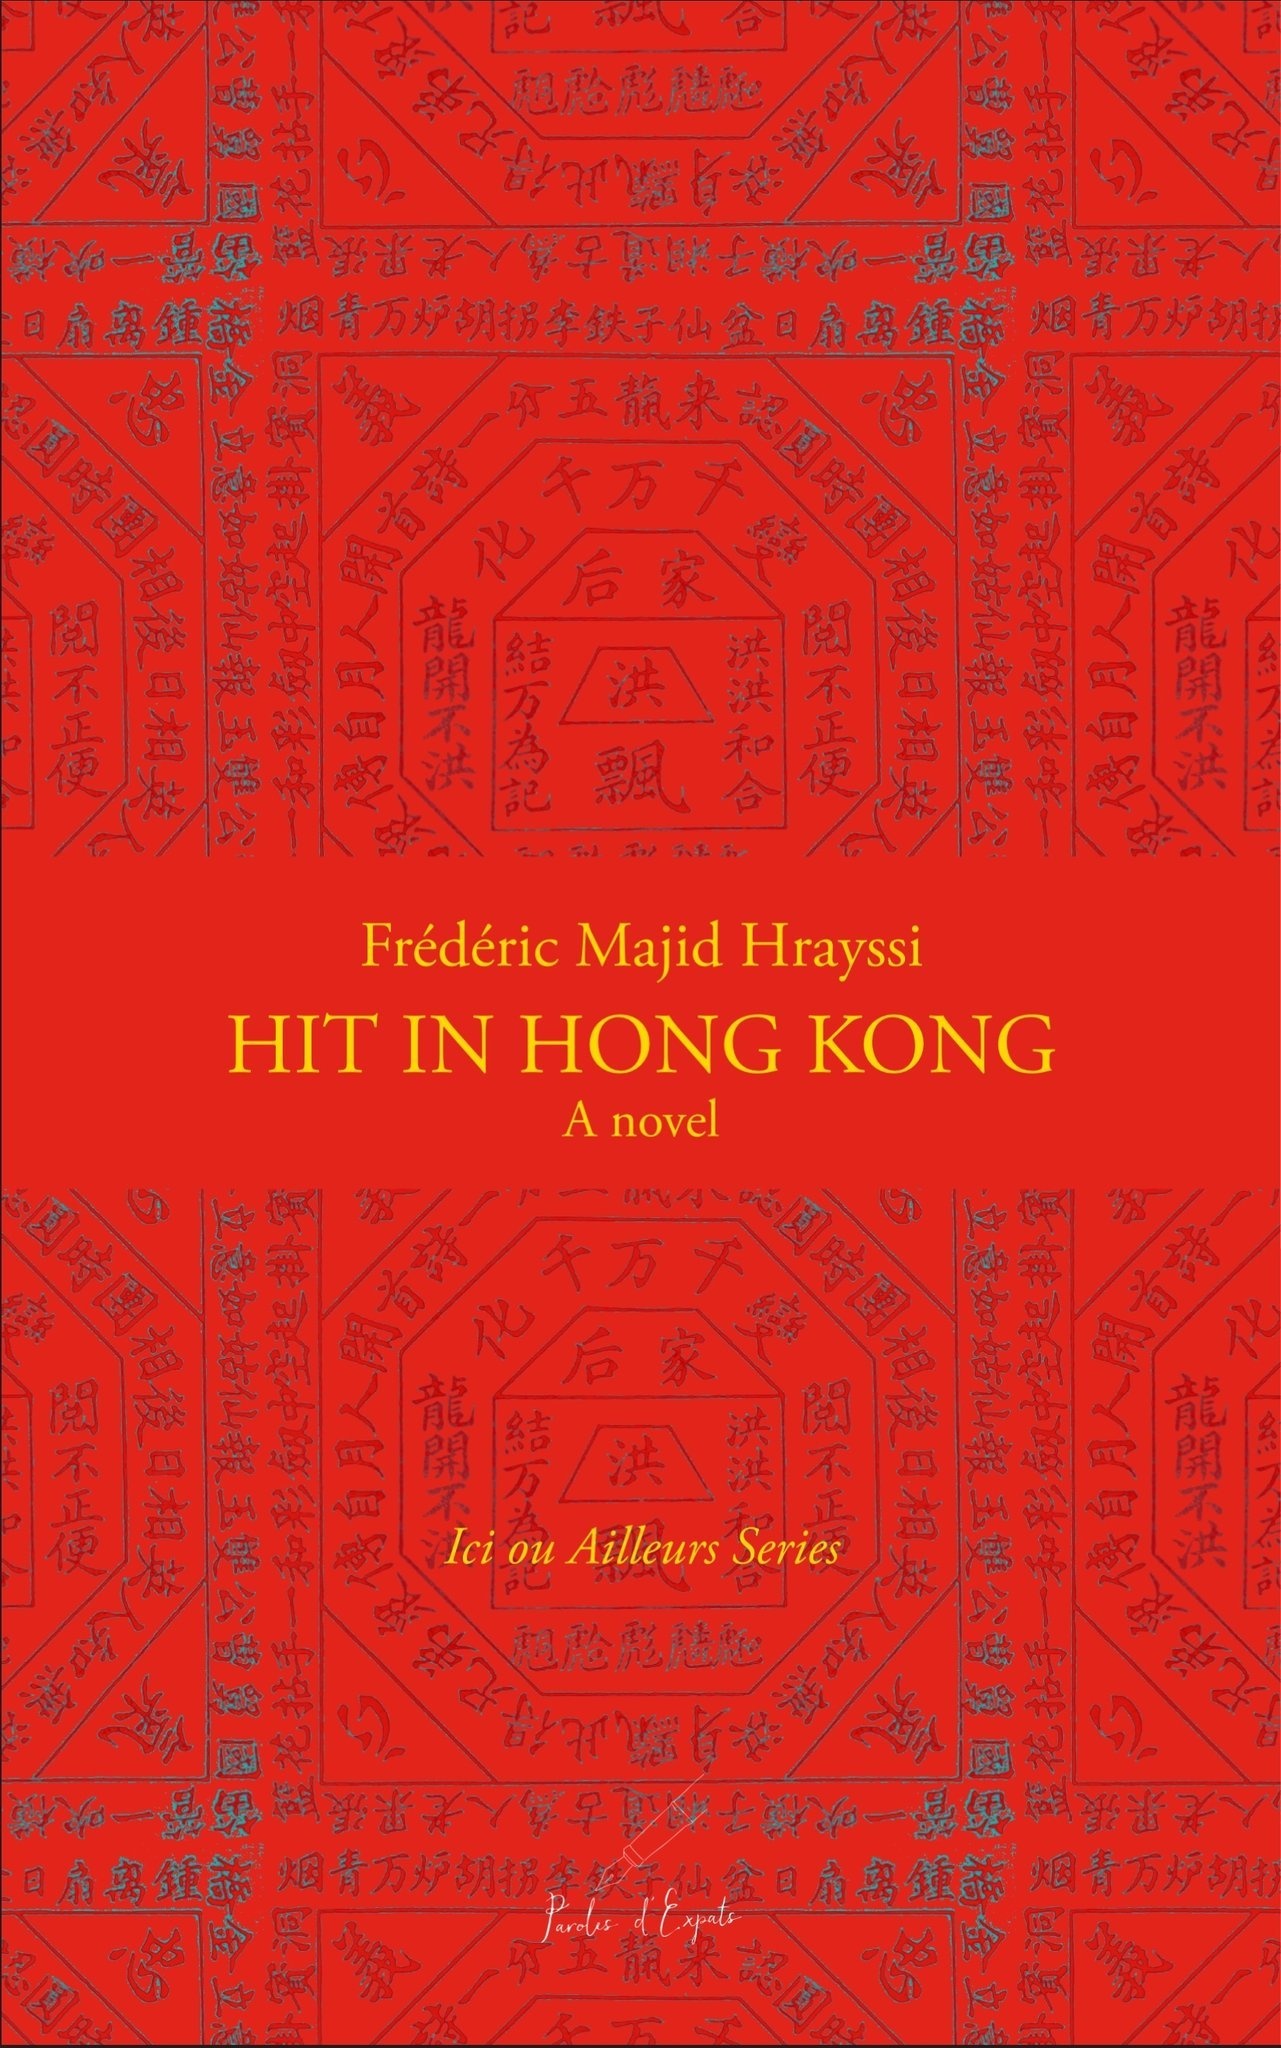 HIT IN HONG KONG